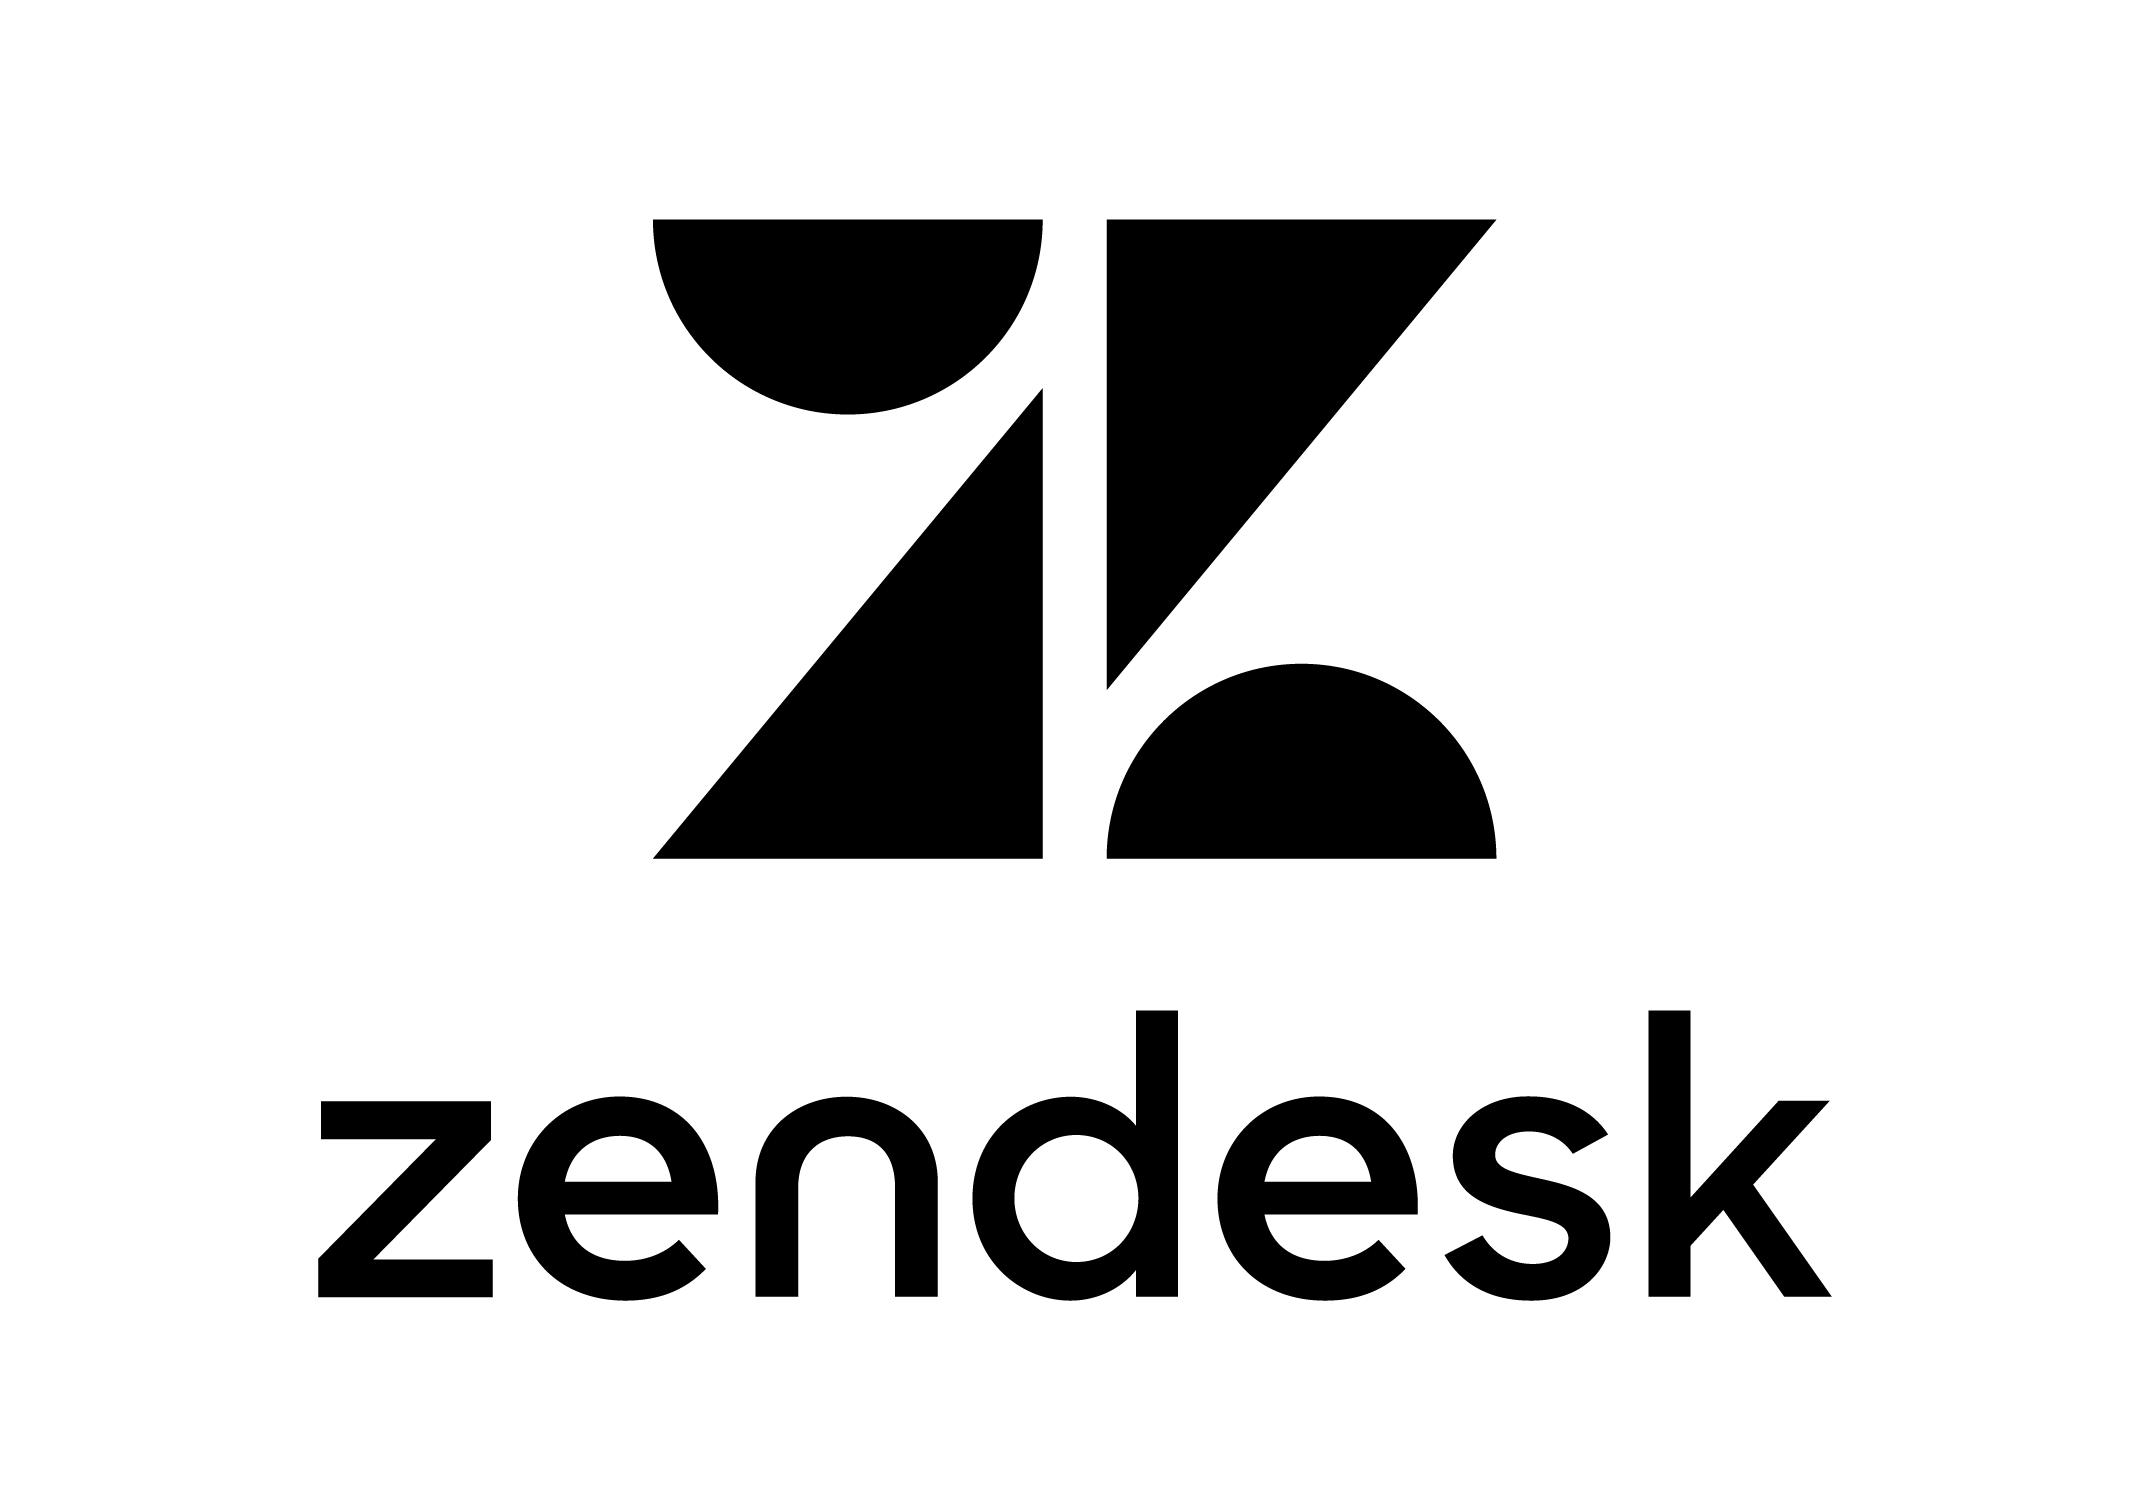 Zendesk's Growth Is Driven by Large Deals and Bundling